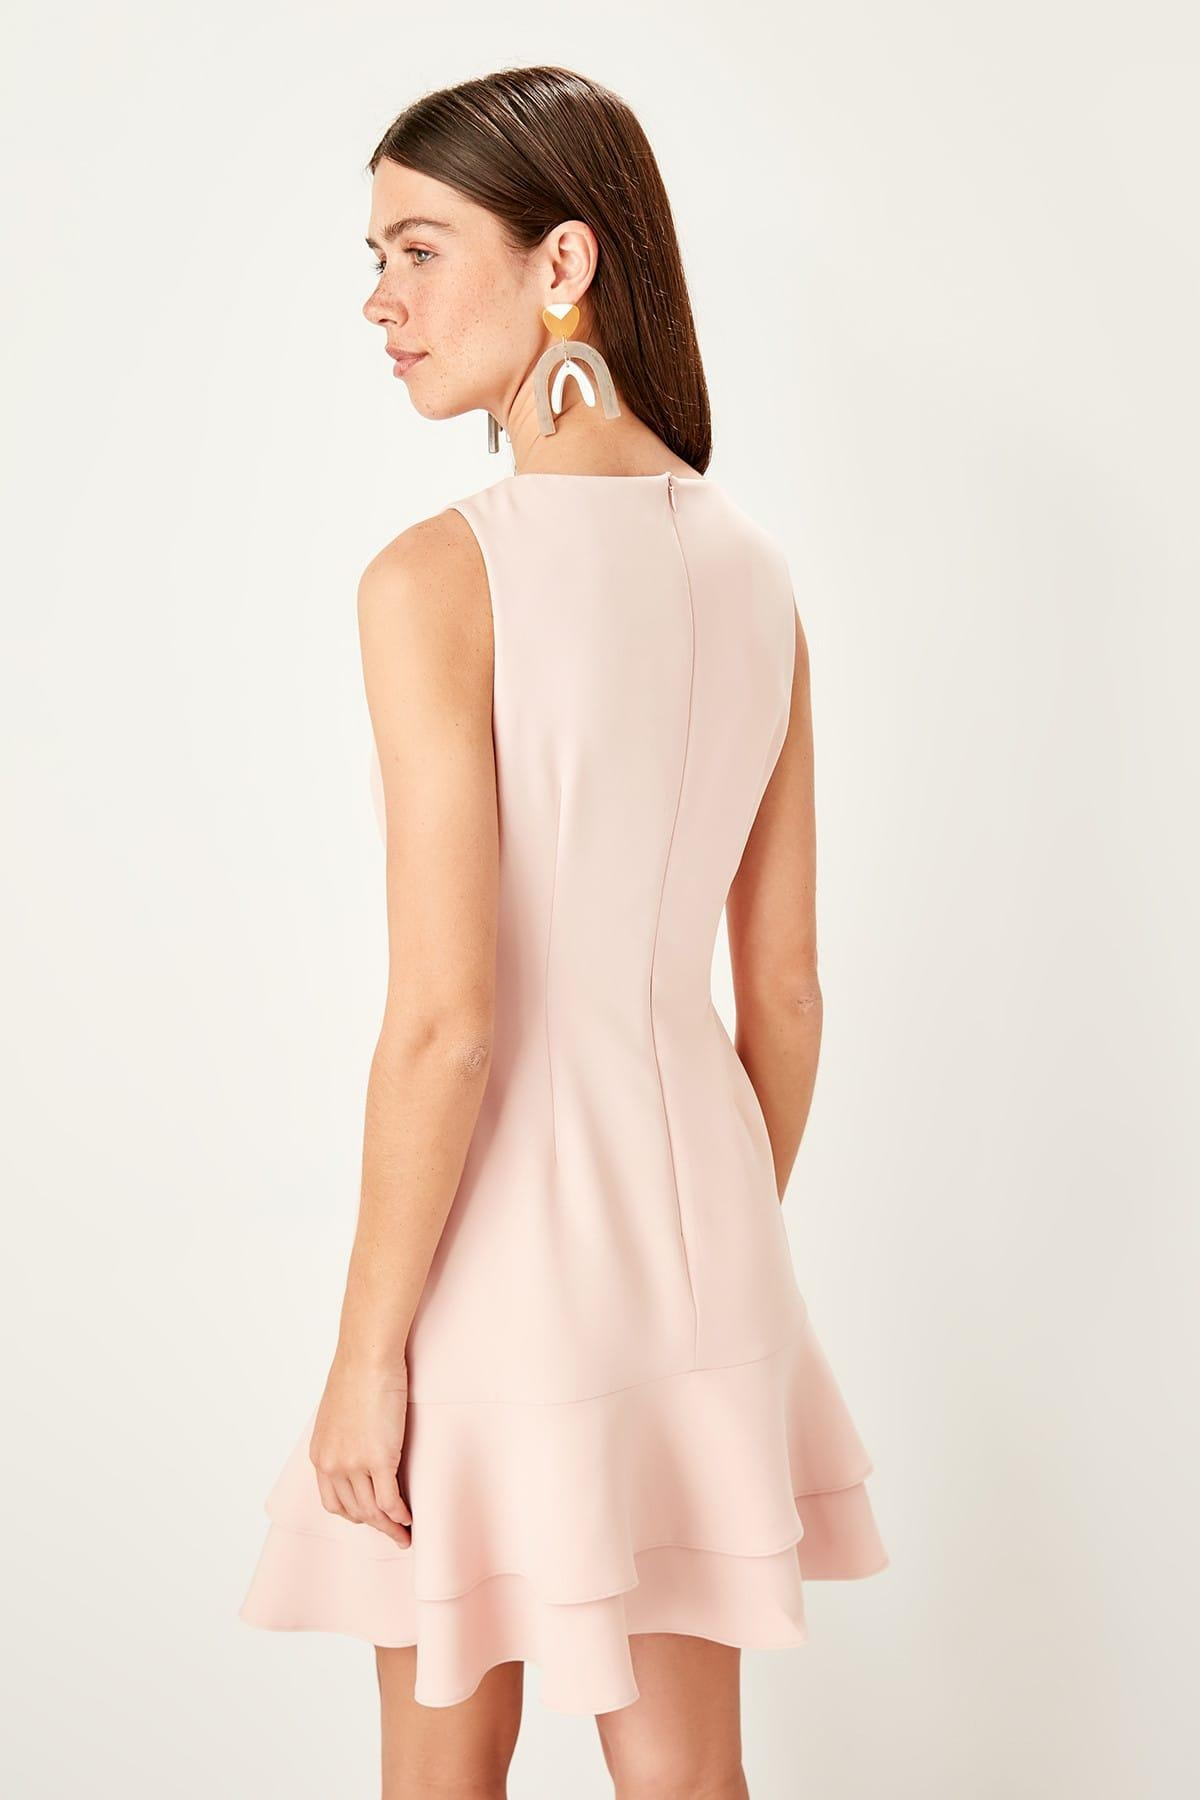 Powder Button Detail Dress - emuuz.com